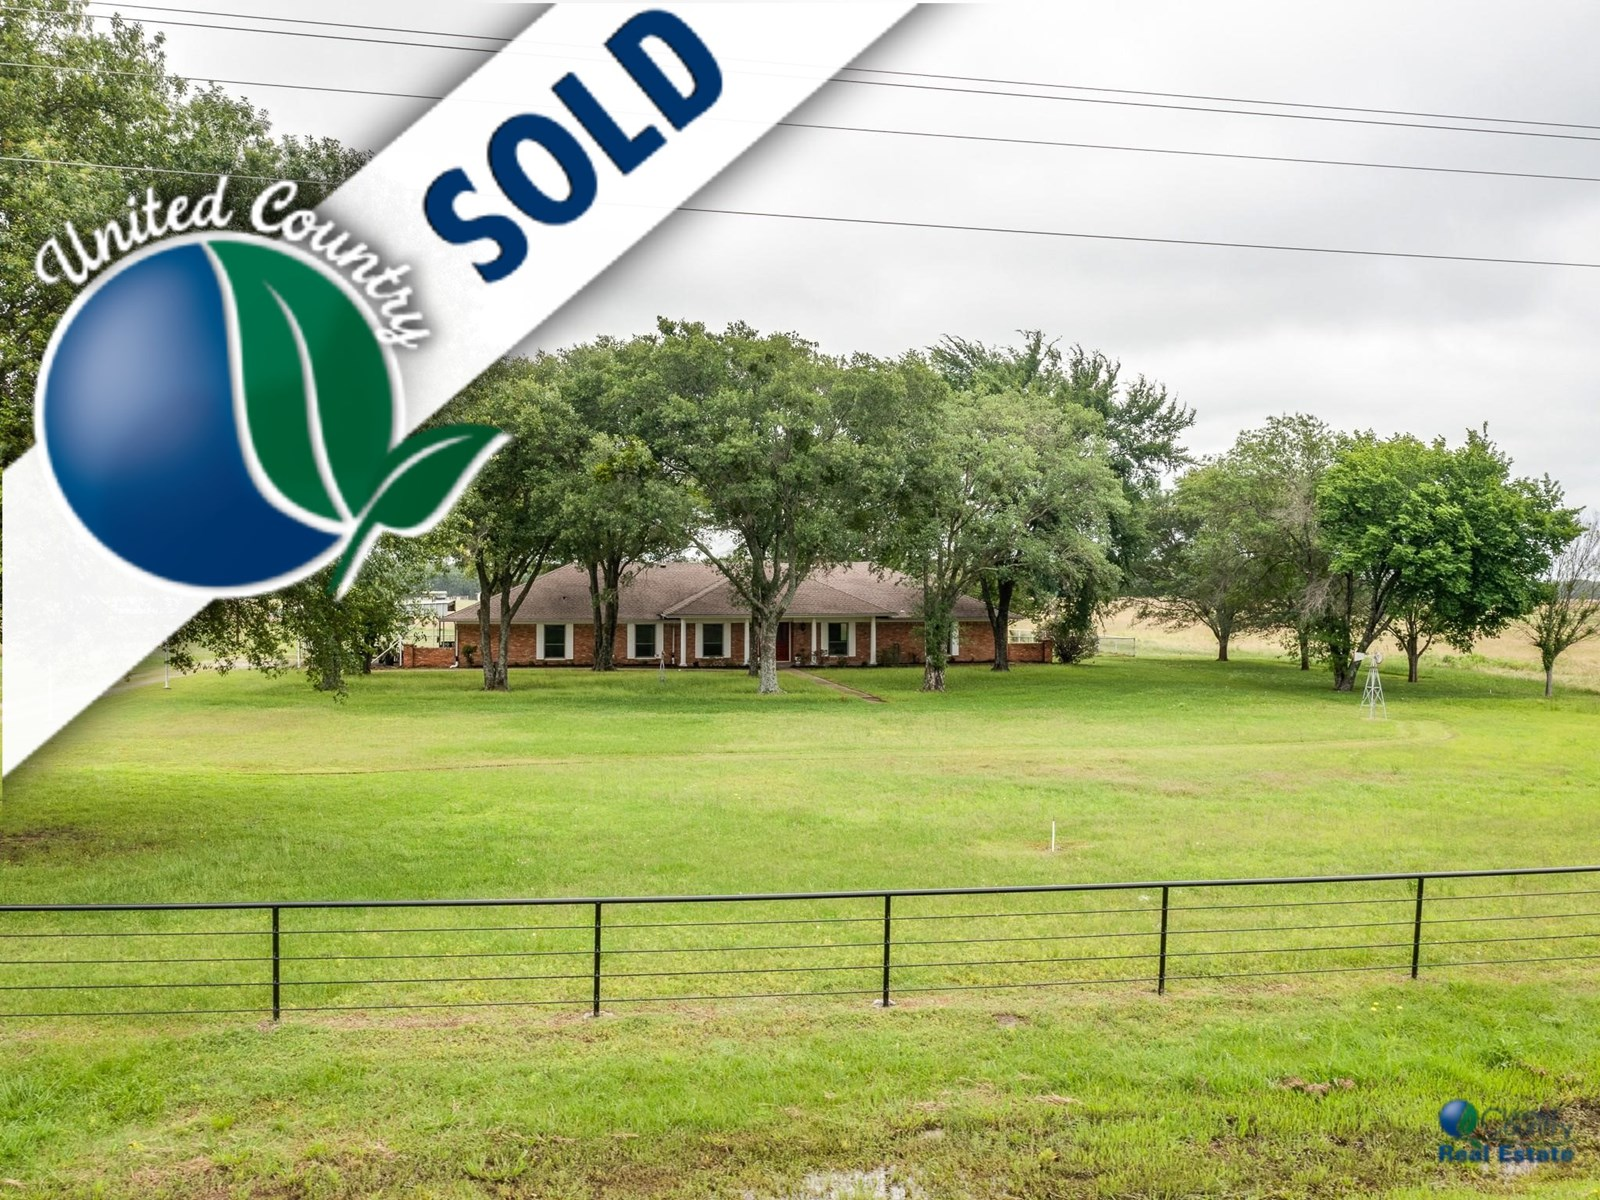 Country Home for Sale in Royse City, Texas (24 AC)